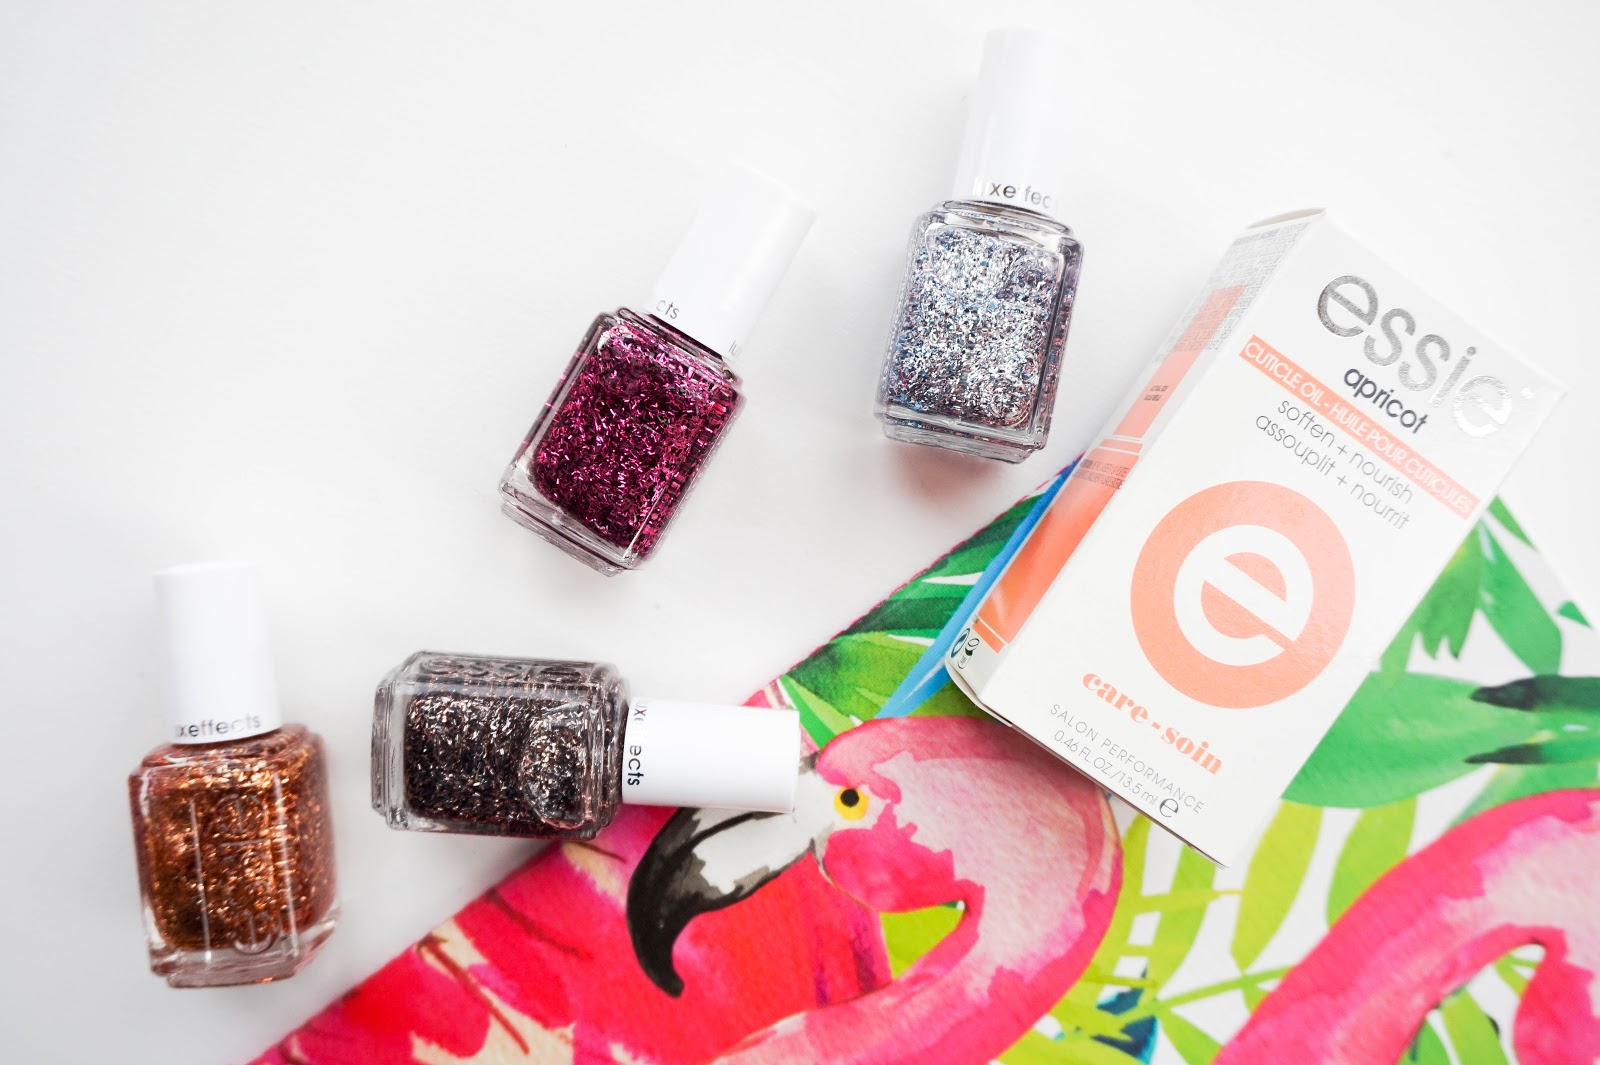 Essie Nails Launch in Spa London